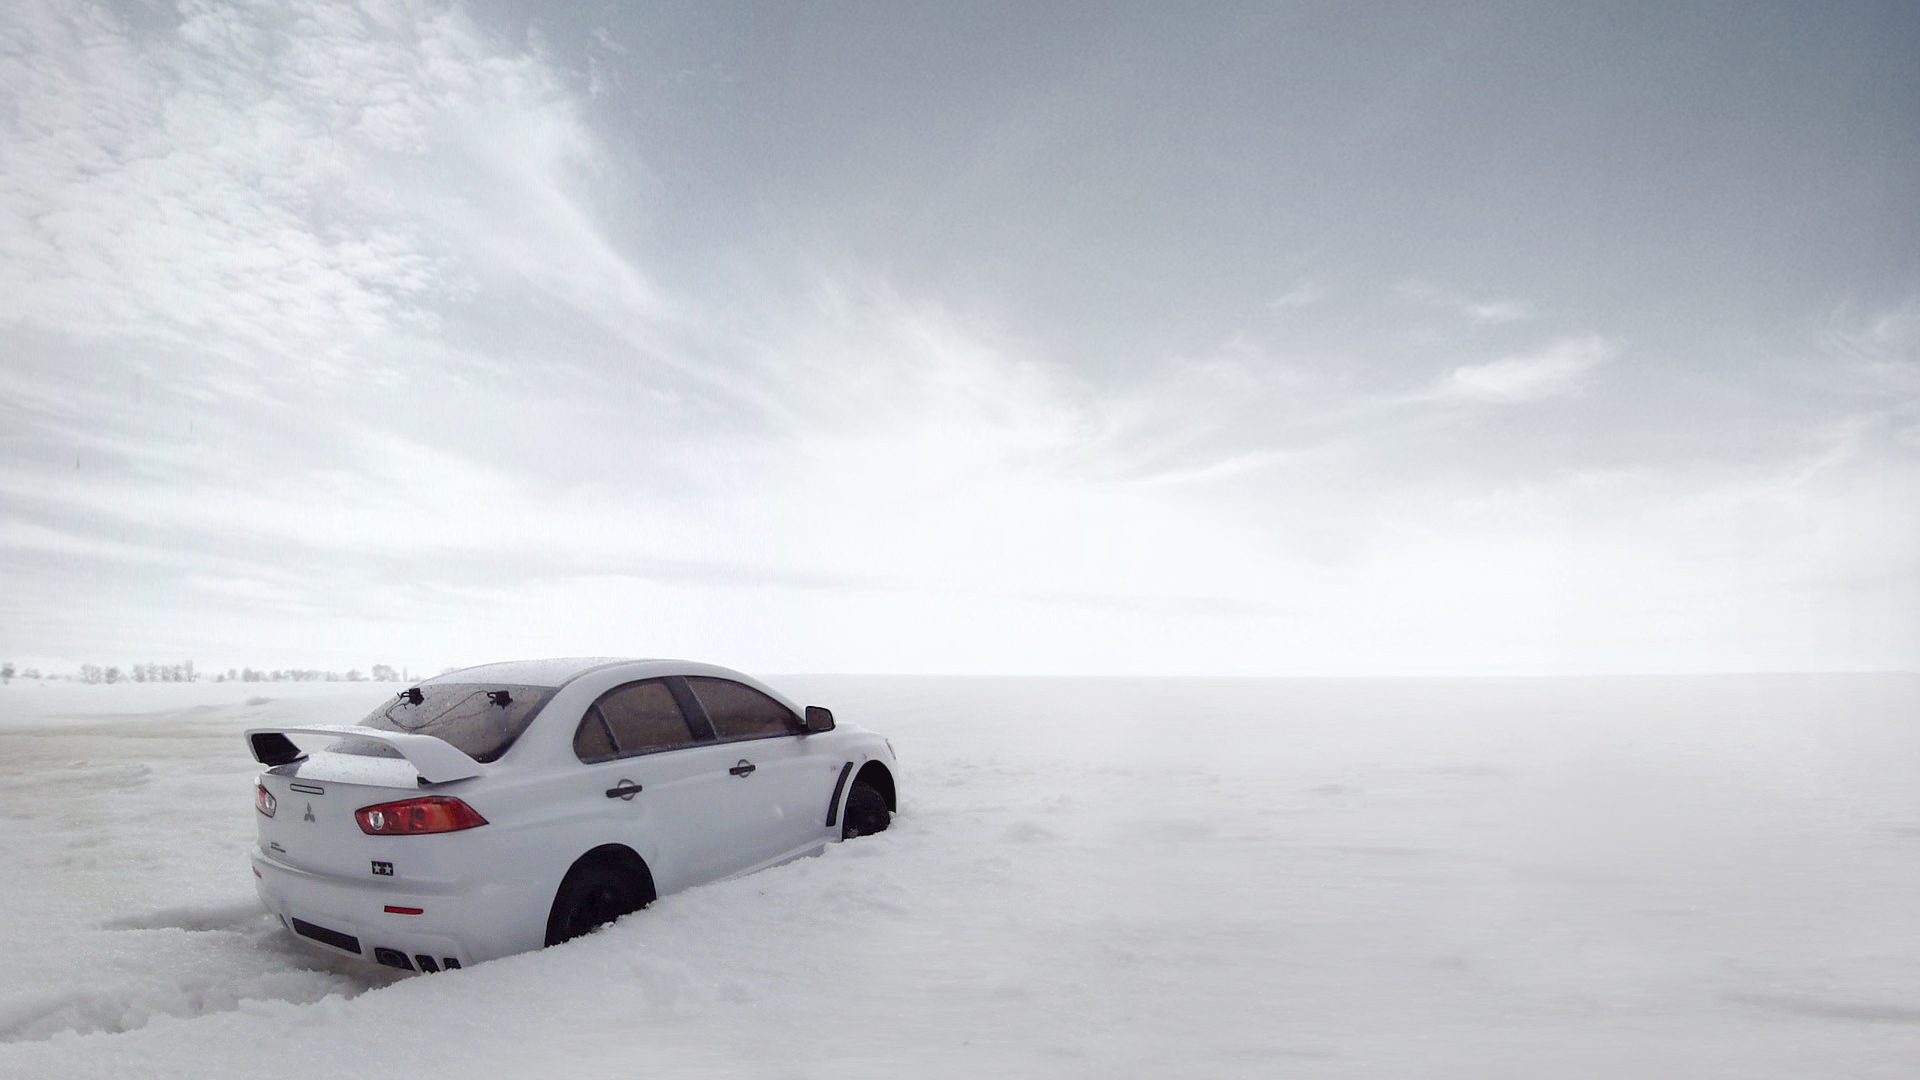 32898 download wallpaper Auto, Mitsubishi, Snow screensavers and pictures for free